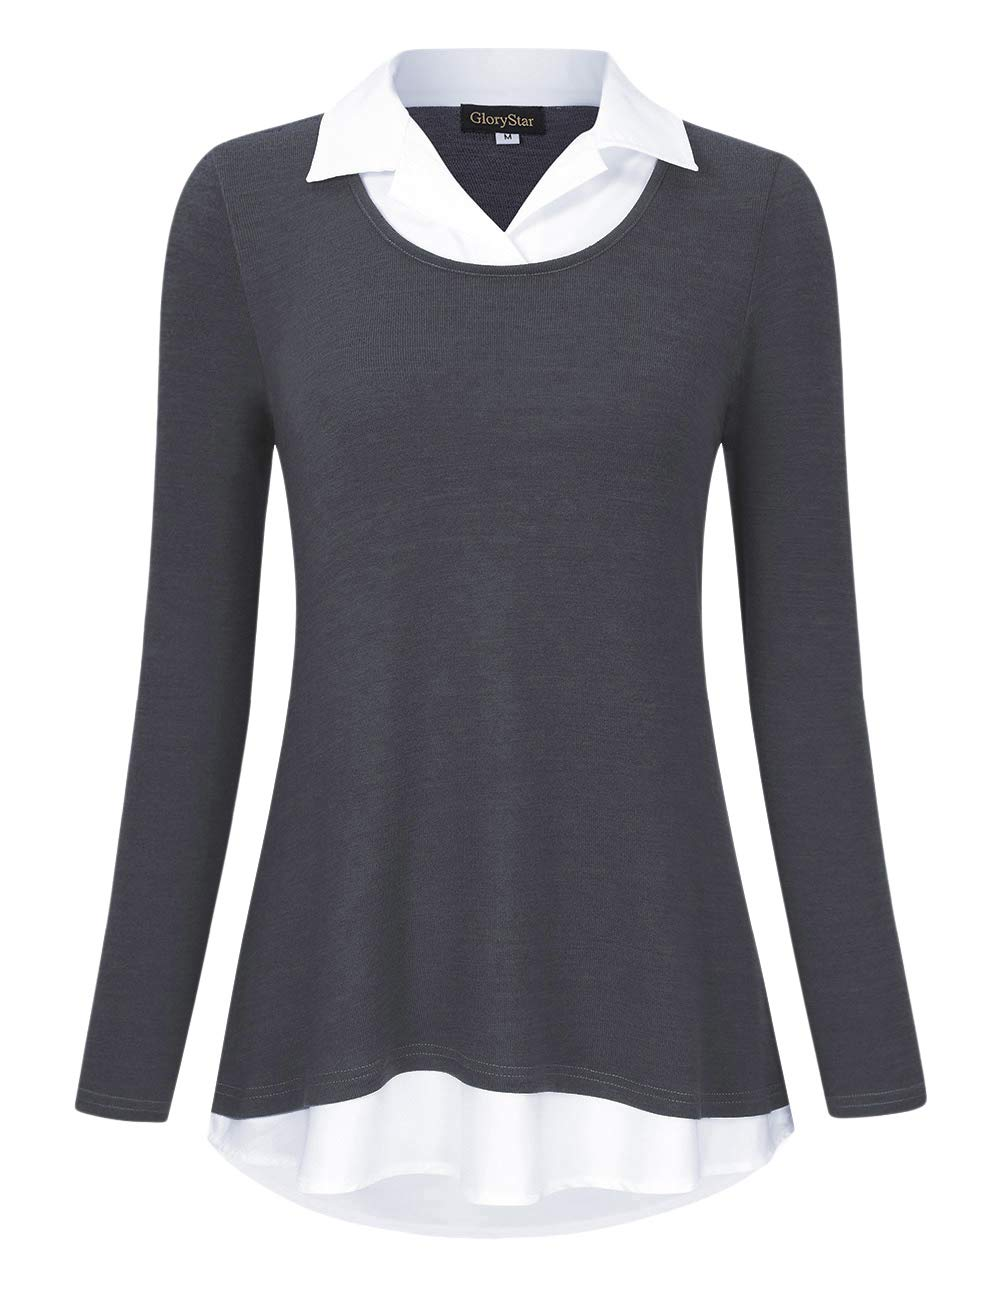 e5e3b070ebb GloryStar Women's Long Sleeve Contrast Collared Shirts Patchwork Work  Blouse Tunics Tops product image